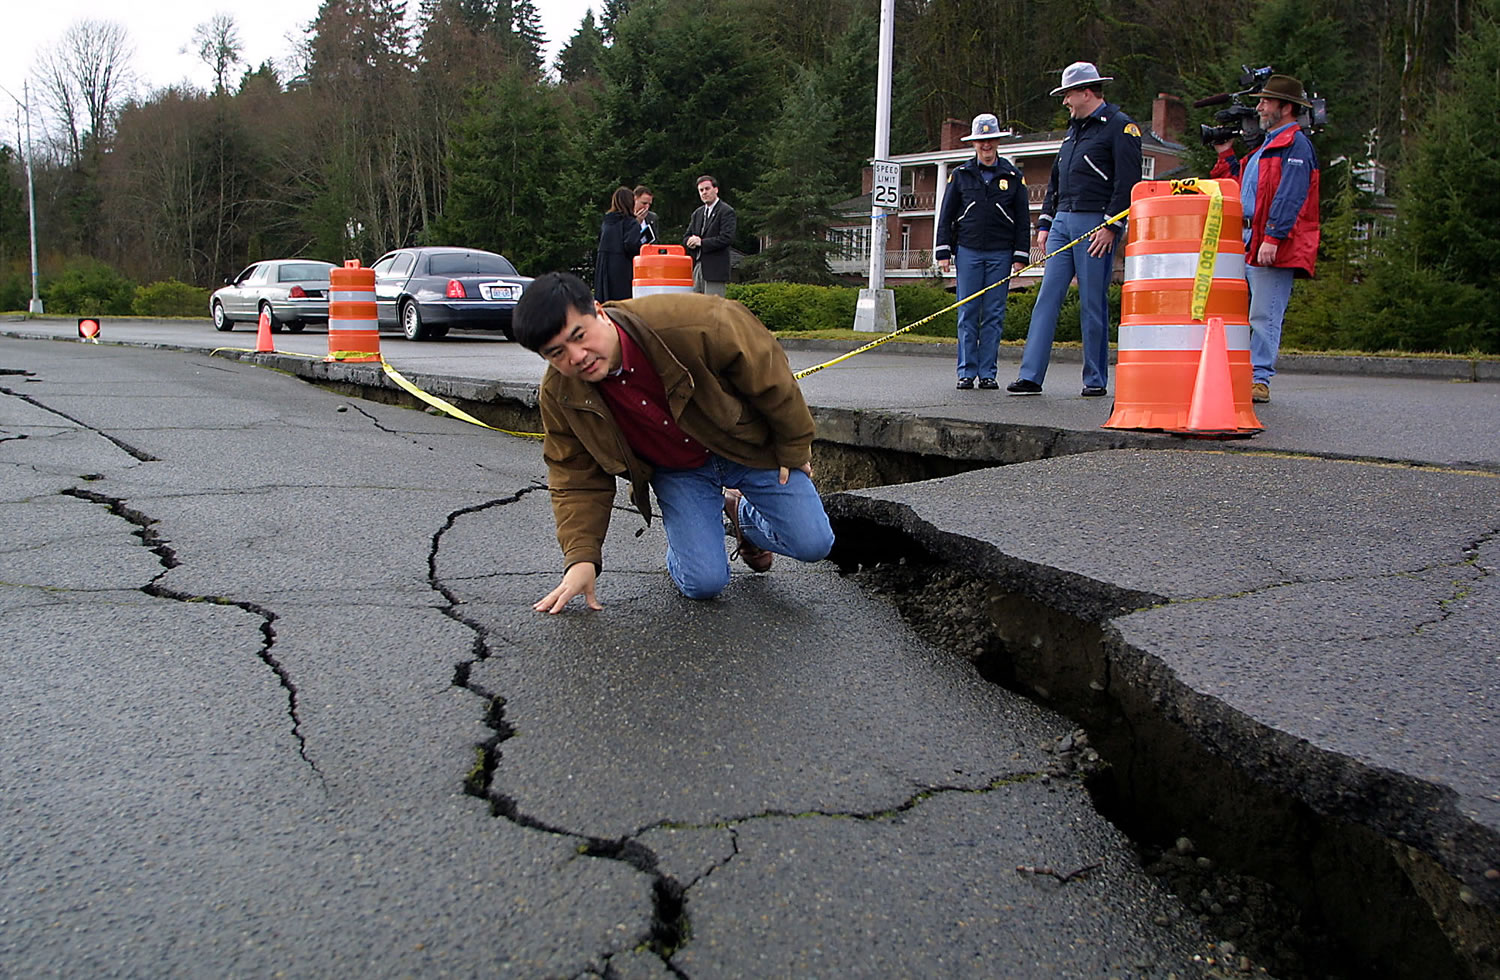 Files/Associated Press Then-Gov. Gary Locke inspects a fissure in Deschutes Parkway in Olympia after the magnitude 6.8 Nisqually quake in 2001. Worse damage is likely the next time the Cascadia fault ruptures off the Pacific coast -- the last Cascadia earthquake was a magnitude 9.0, more than 100 times as powerful as the Nisqually quake.